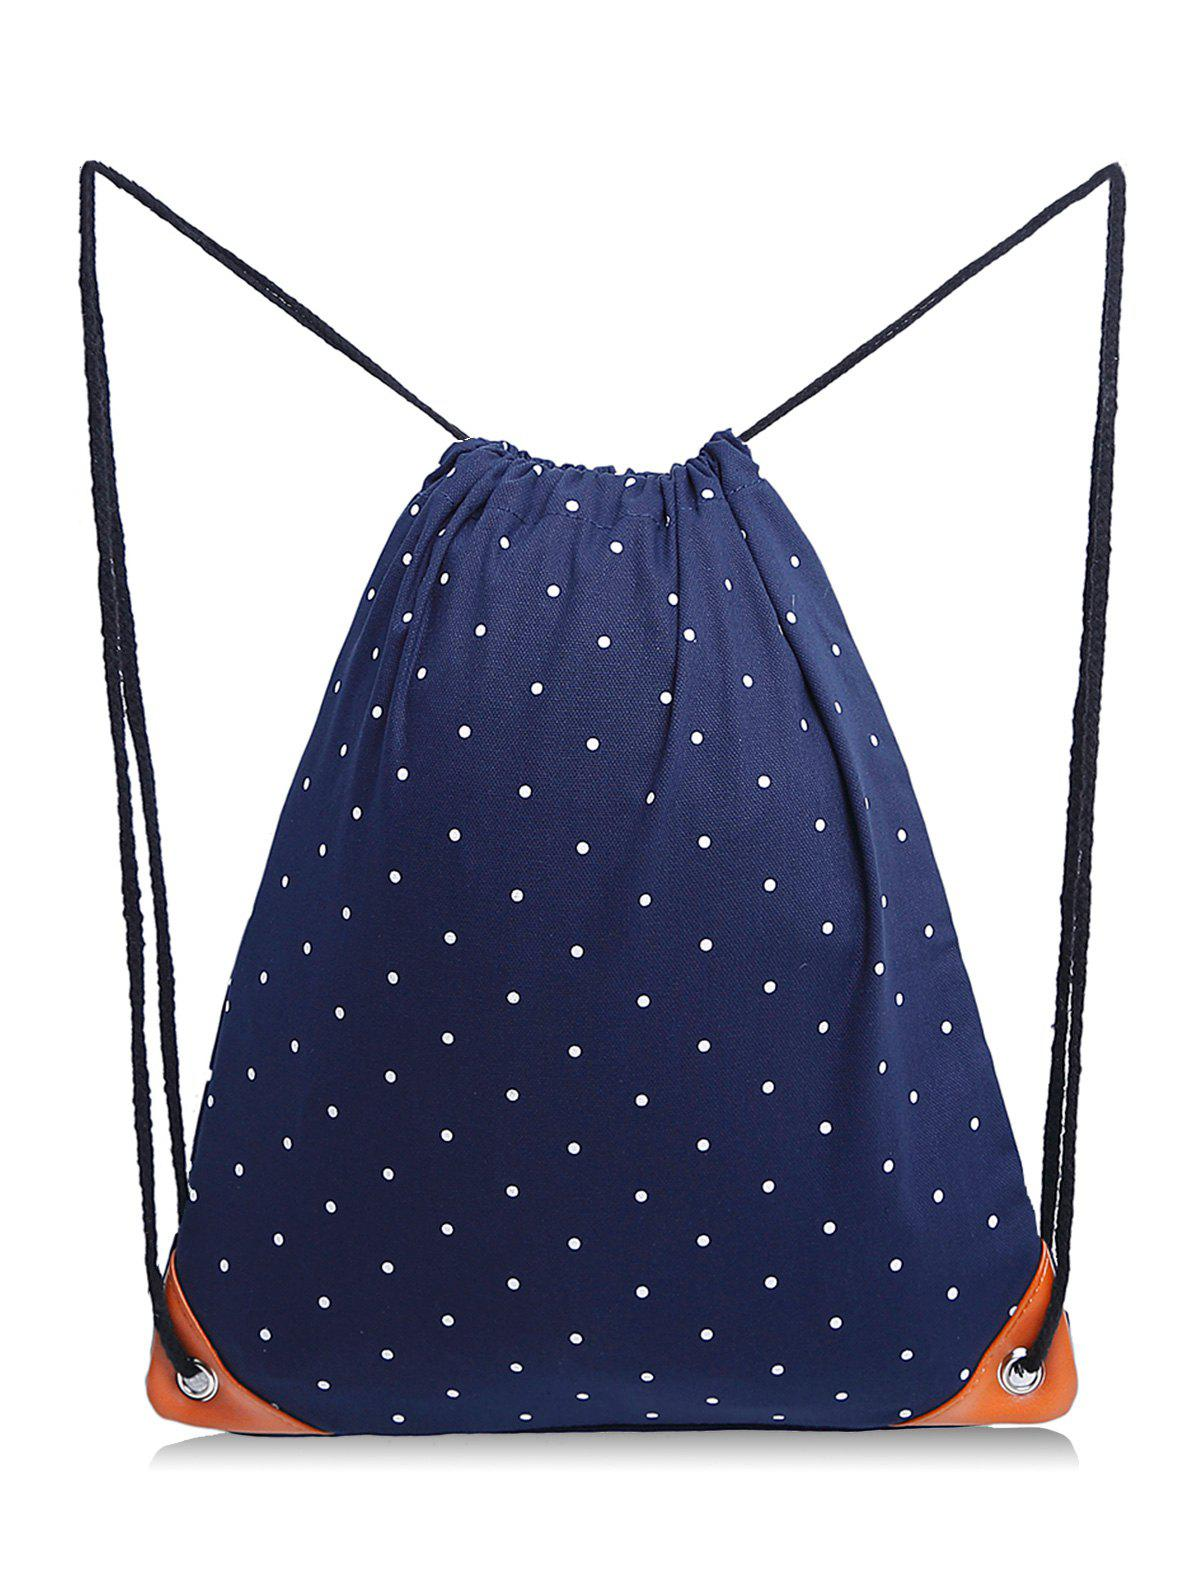 Affordable Polka Dot Casual School Drawstring Backpack